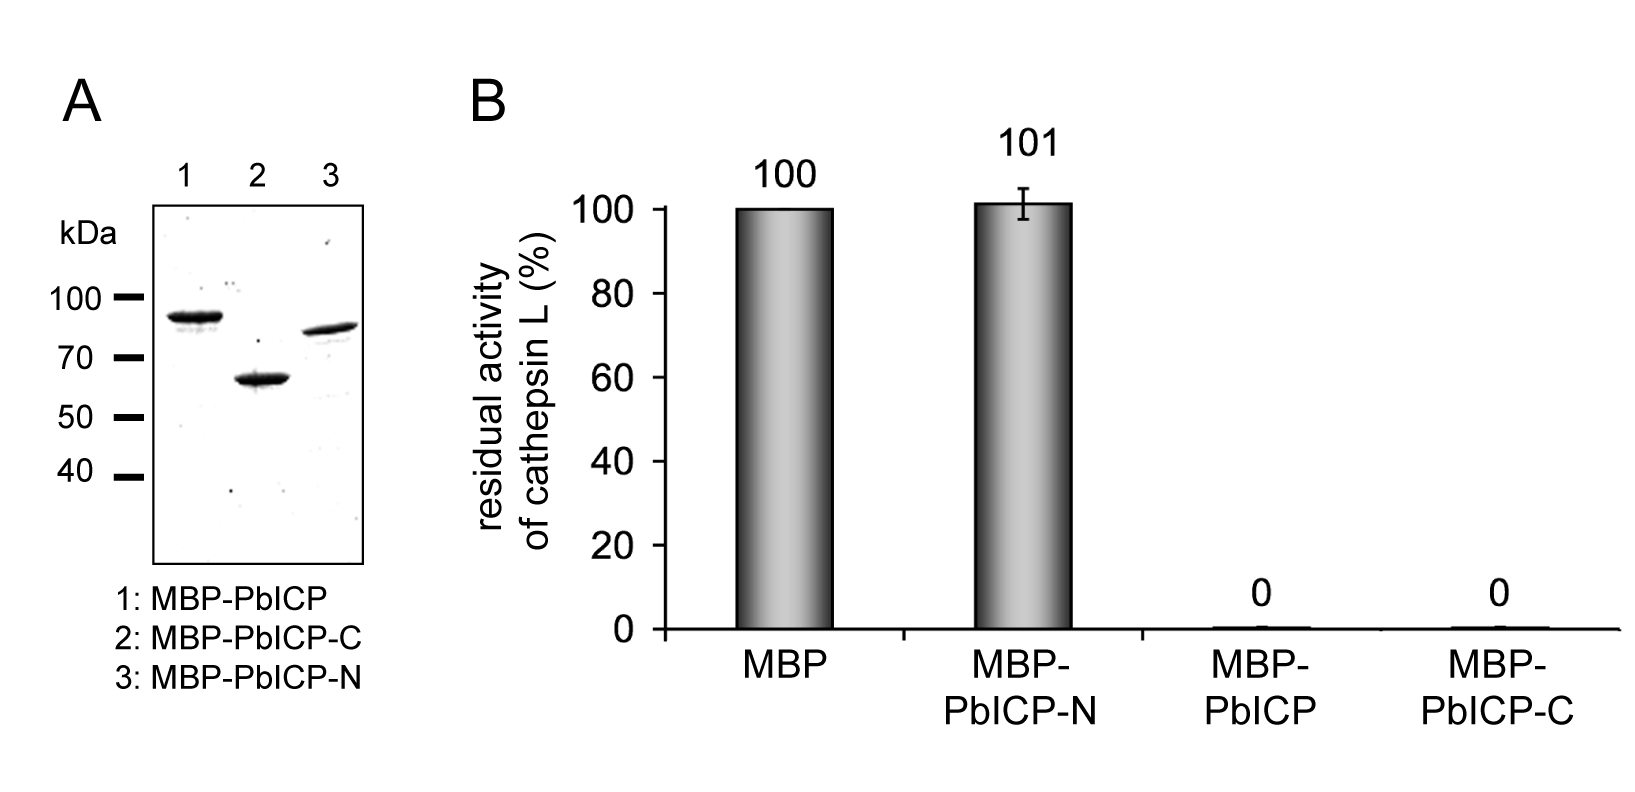 The C-terminal domain of PbICP is necessary and sufficient for the inhibitor function.